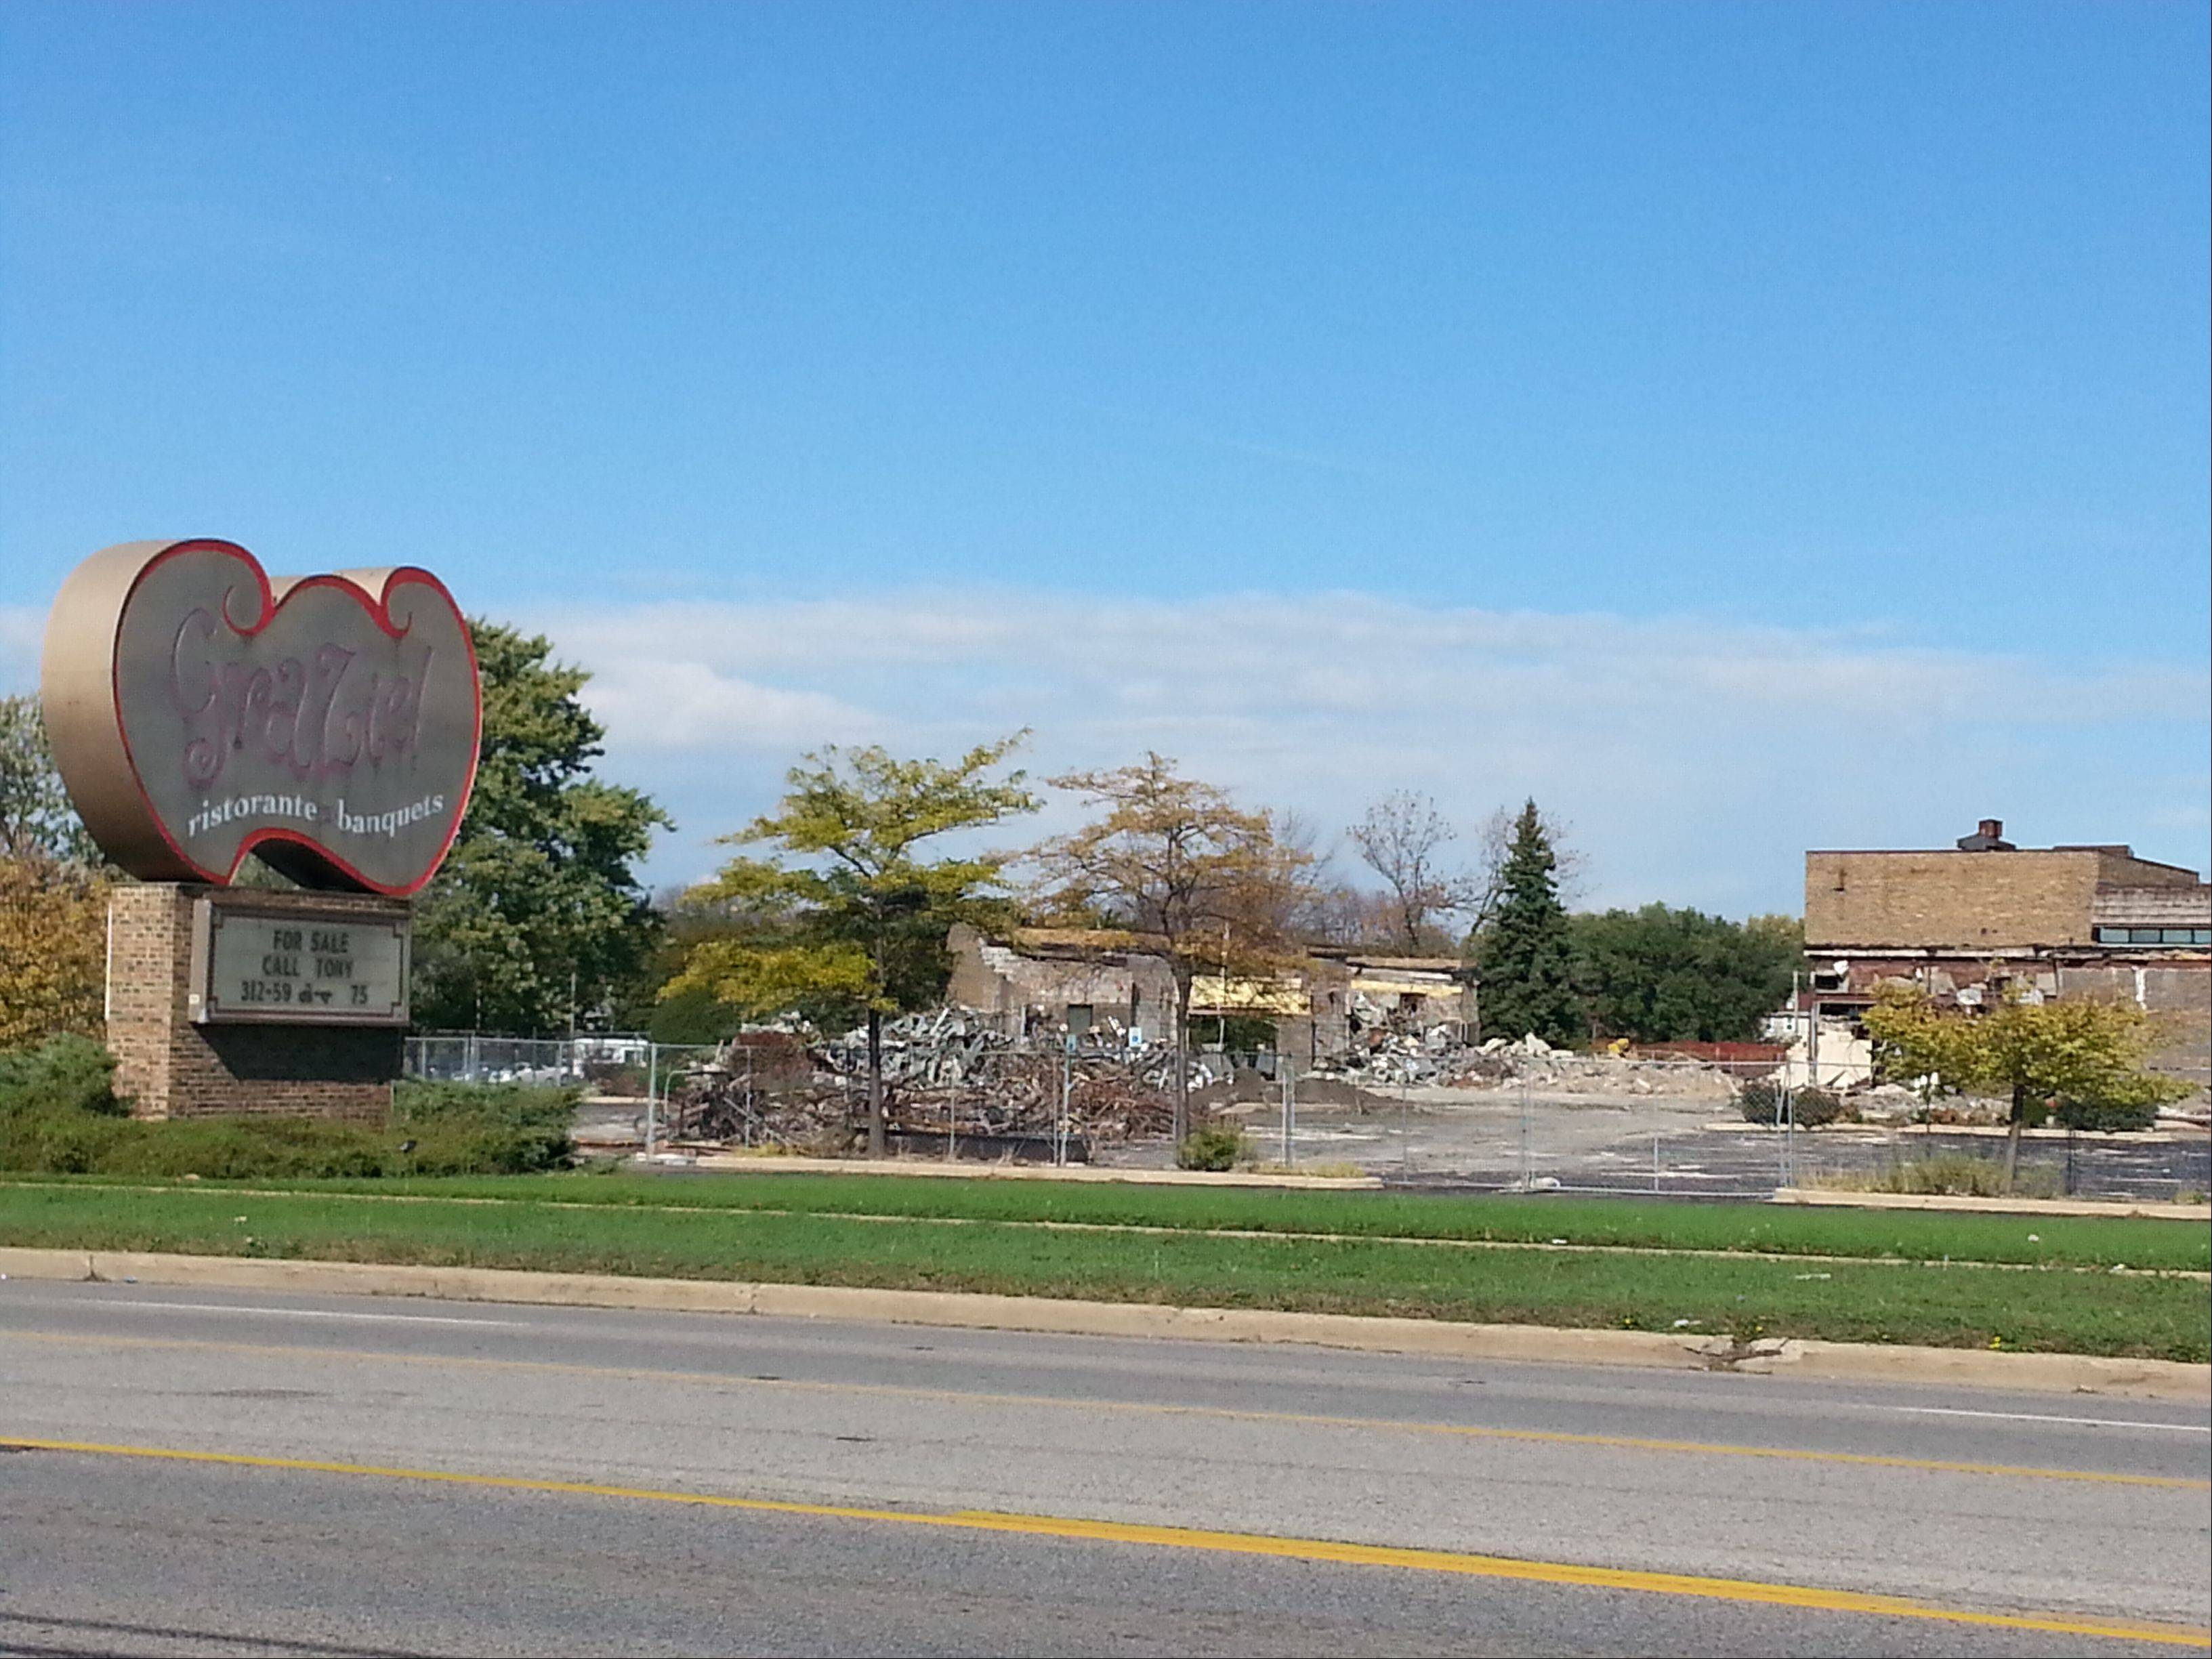 The former Grazie Ristorante in Des Plaines is being demolished to make way for a new fitness club, the site�s new owner said Monday. The restaurant closed about two years ago after the property was foreclosed upon.